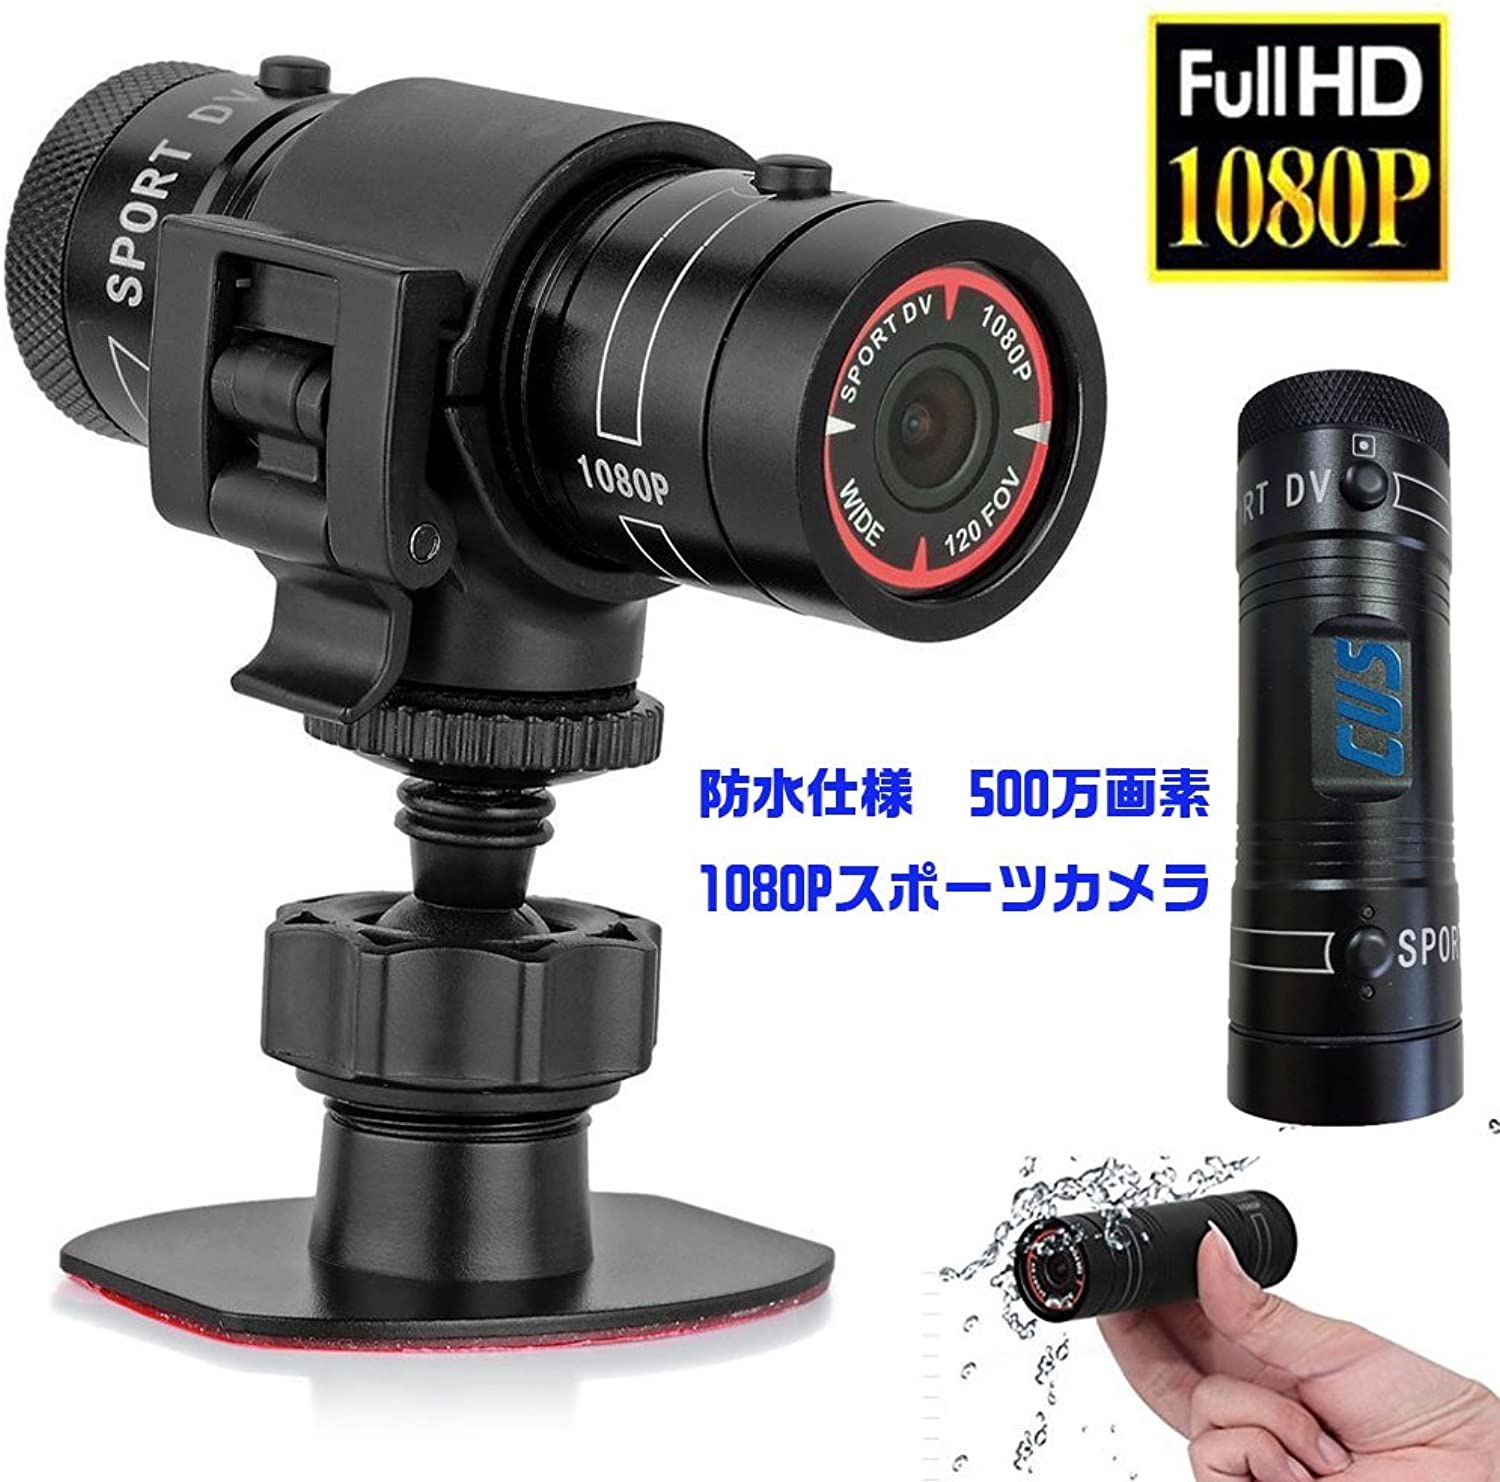 CUS bike bicycle drive recorder sports camera 500 million pixels 1080P   720P video recording up to 60fps corresponding  CUSCFF9